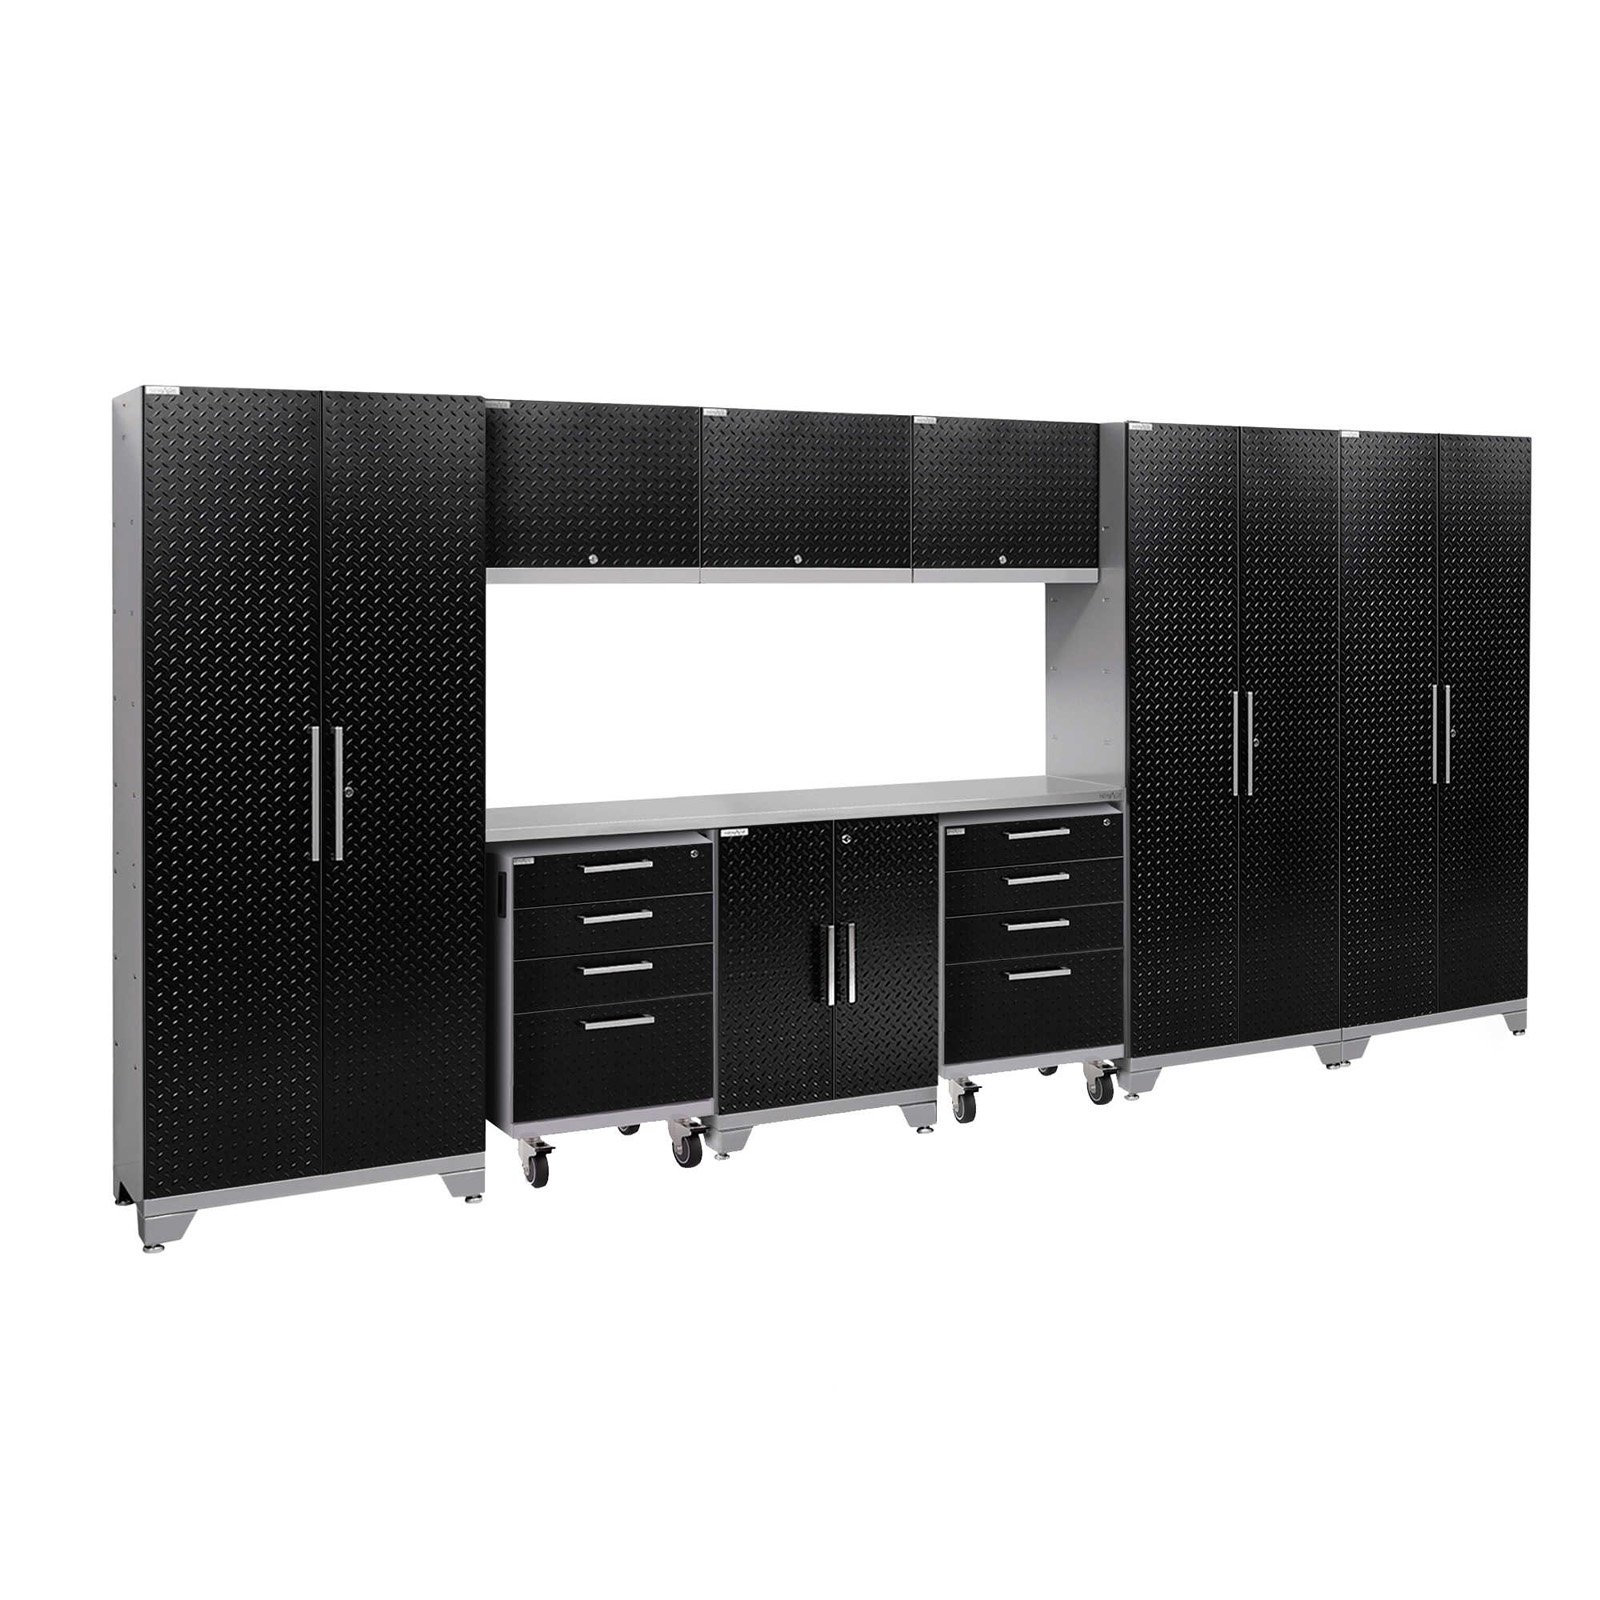 NewAge Products Performance 2.0 Diamond Plate 10 Piece Garage Cabinet System